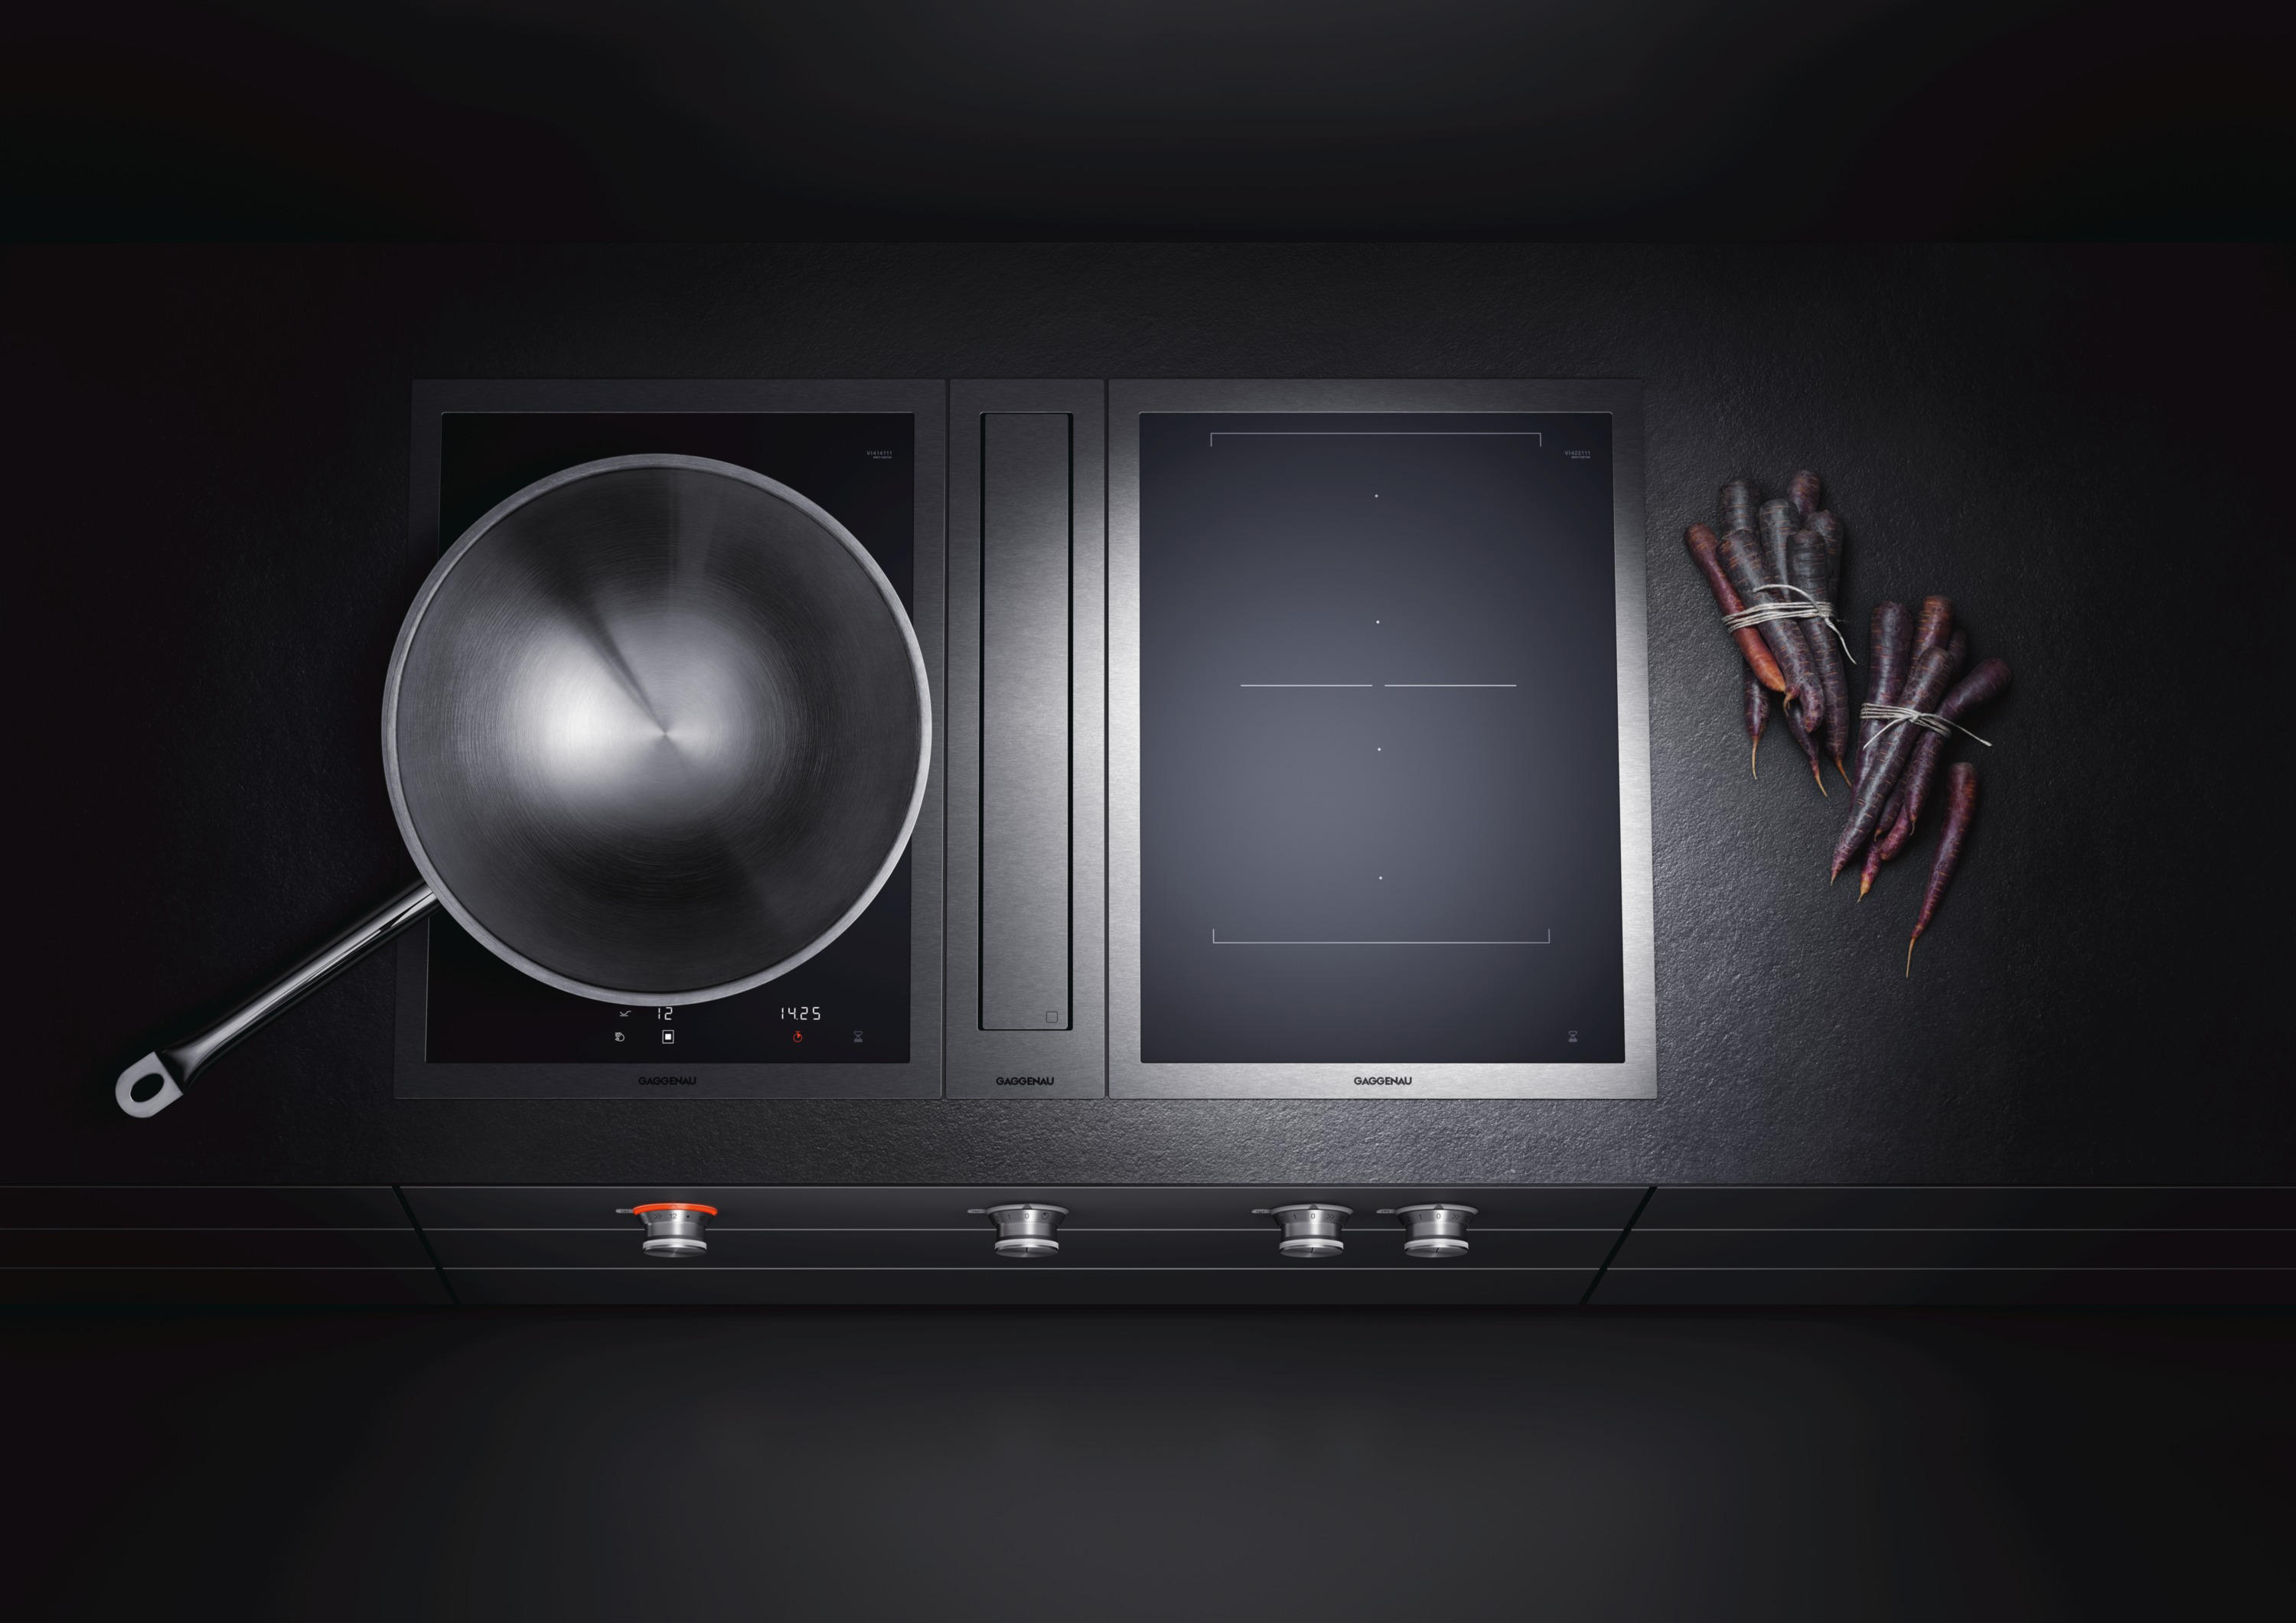 vario induction cooktop 400 series vi 492 hobs from gaggenau architonic. Black Bedroom Furniture Sets. Home Design Ideas